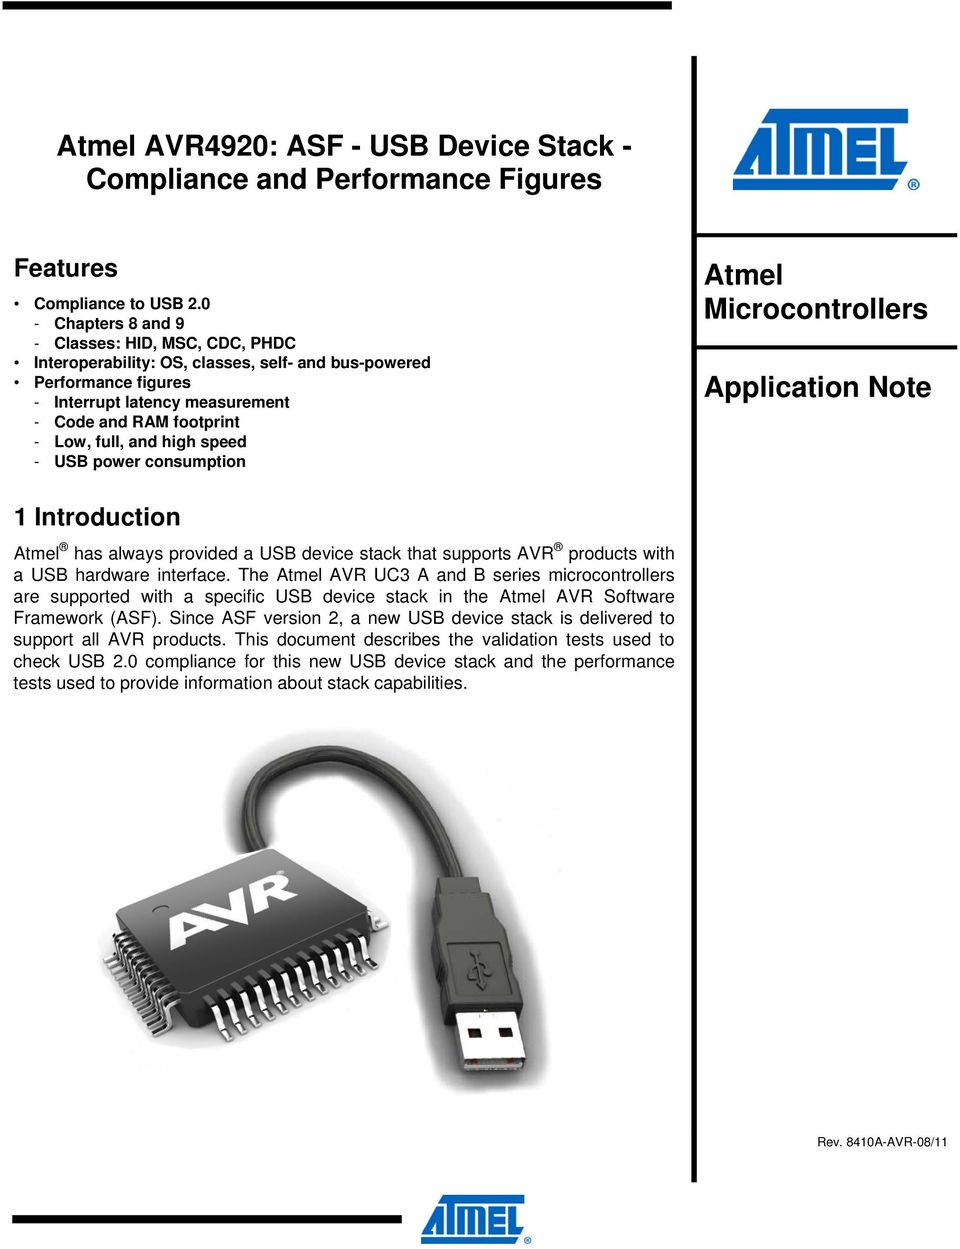 high speed - USB power consumption Atmel Microcontrollers Application Note 1 Introduction Atmel has always provided a USB device stack that supports AVR products with a USB hardware interface.